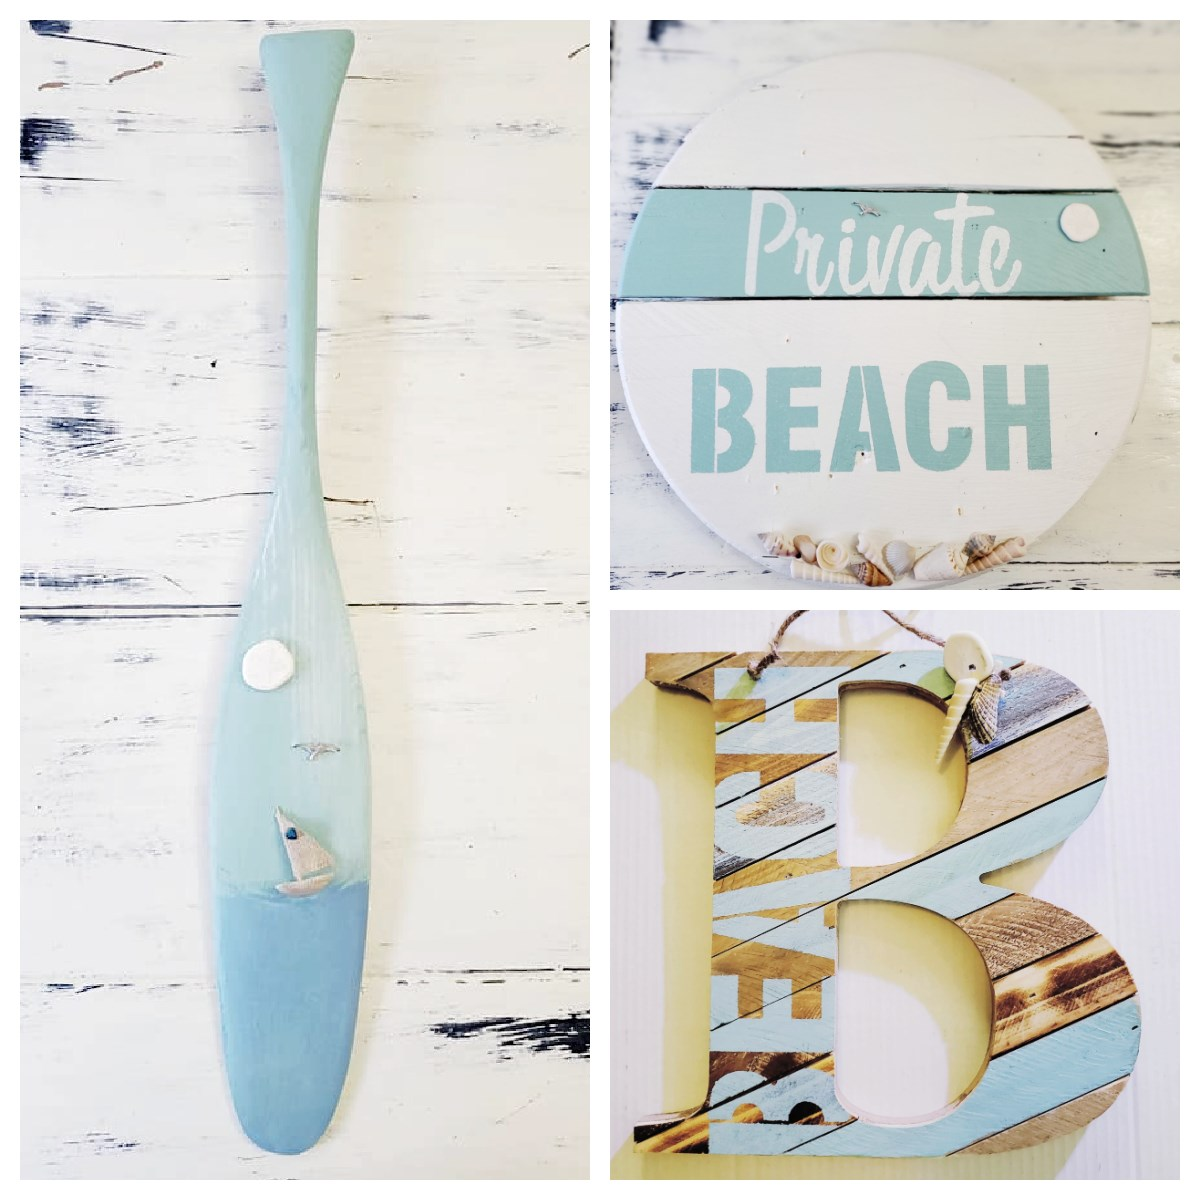 Upcycled beach crafts by Junky Encores on Facebook, featured on DIY Salvaged Junk Projects 571 on Funky Junk!